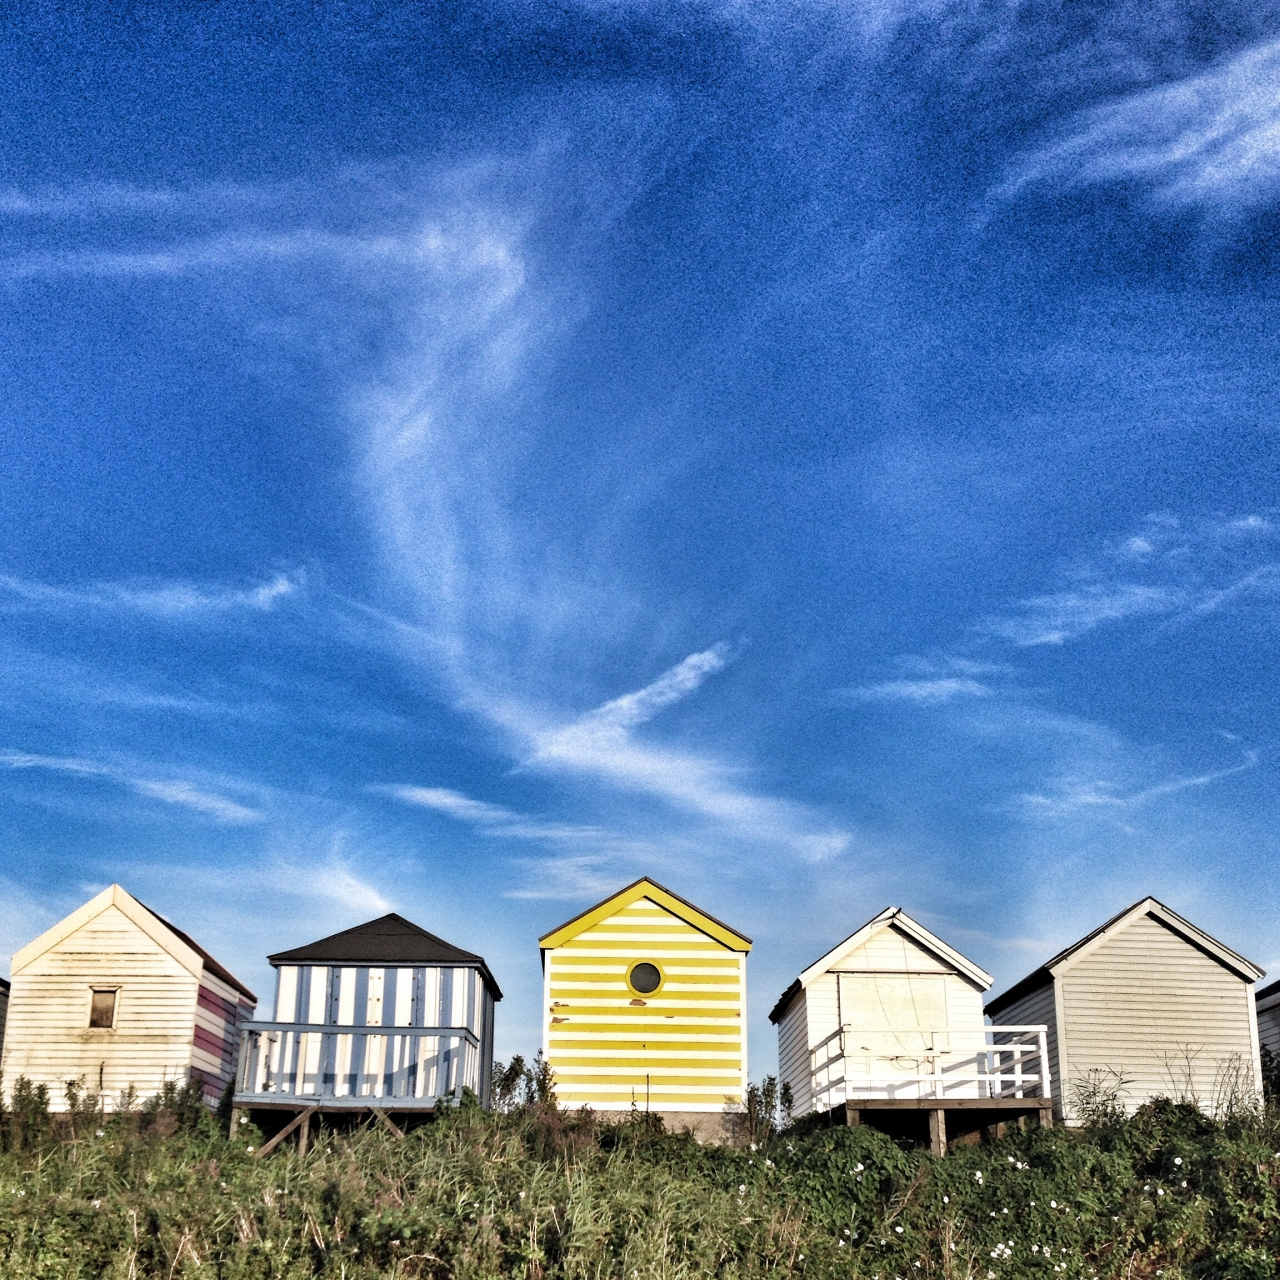 Summer beach huts at Anderby Creek Lincolnshire. Edited with Drama from Snapseed